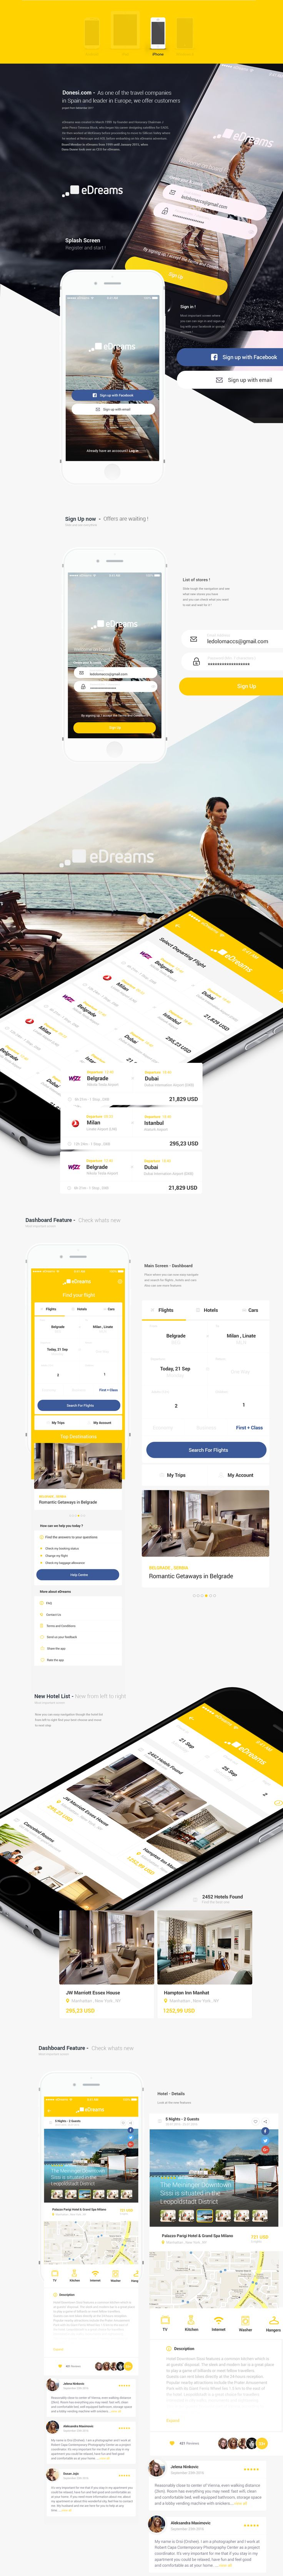 eDreams.com Redesign App - biggest e-commerce travel co on Behance